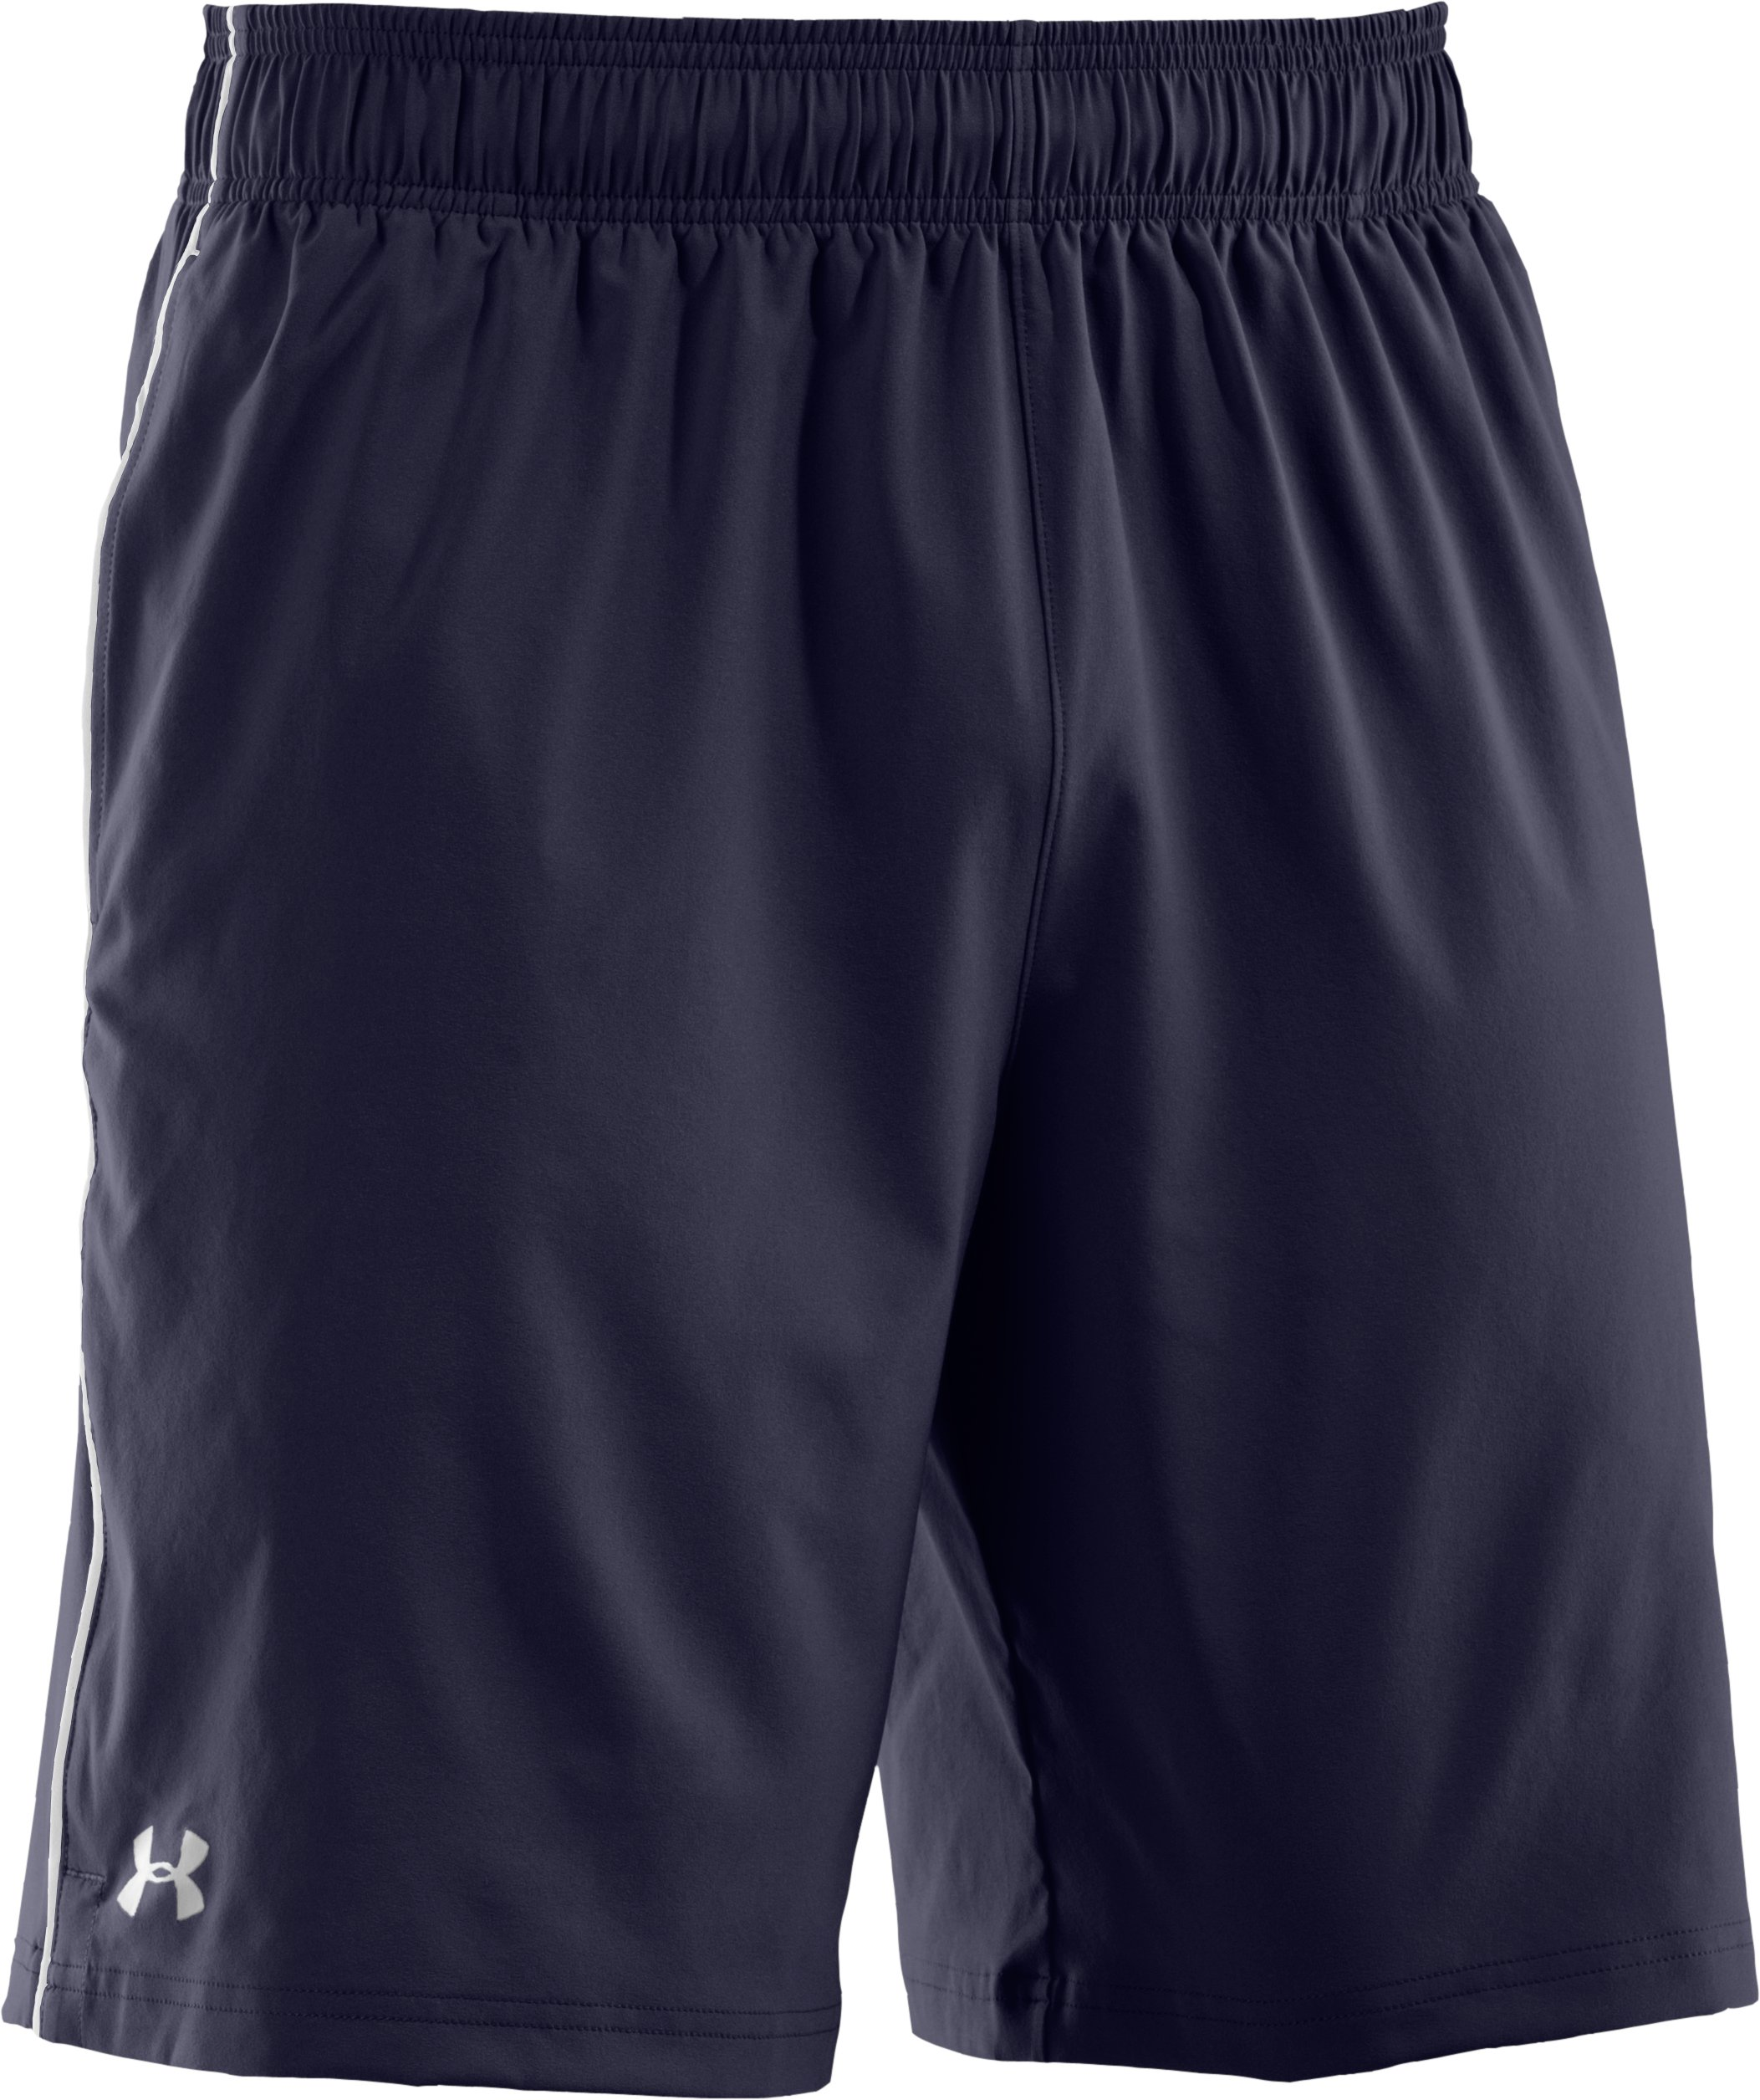 "Men's UA Mirage 10"" Shorts, Midnight Navy, undefined"